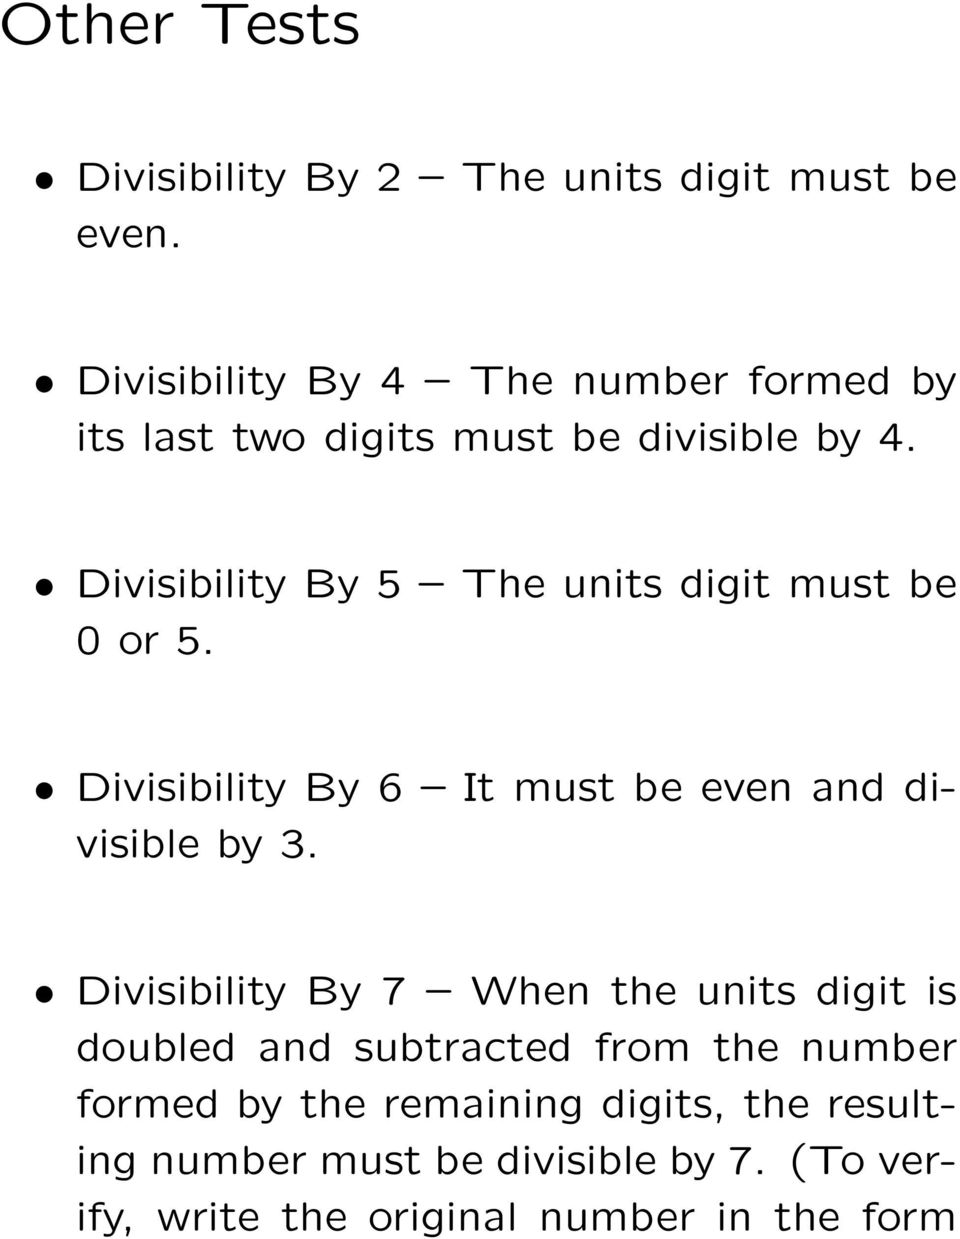 Divisibility By 5 The units digit must be 0 or 5. Divisibility By 6 It must be even and divisible by 3.